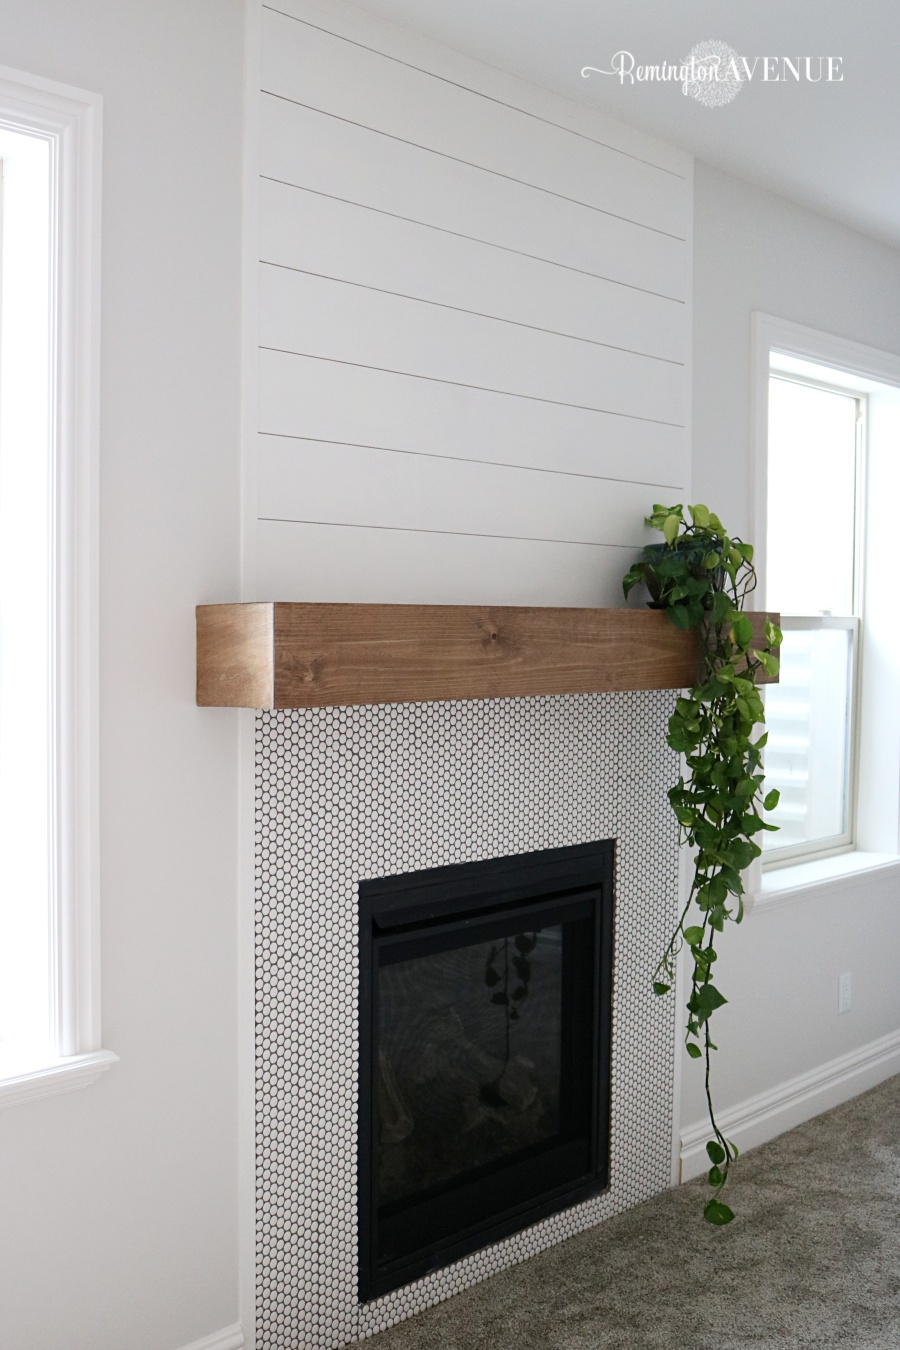 easy diy wood mantel remington avenue floating fireplace shelf course real chunk would hundreds dollars naturally chose make own was actually way easier then imagined wall shelves